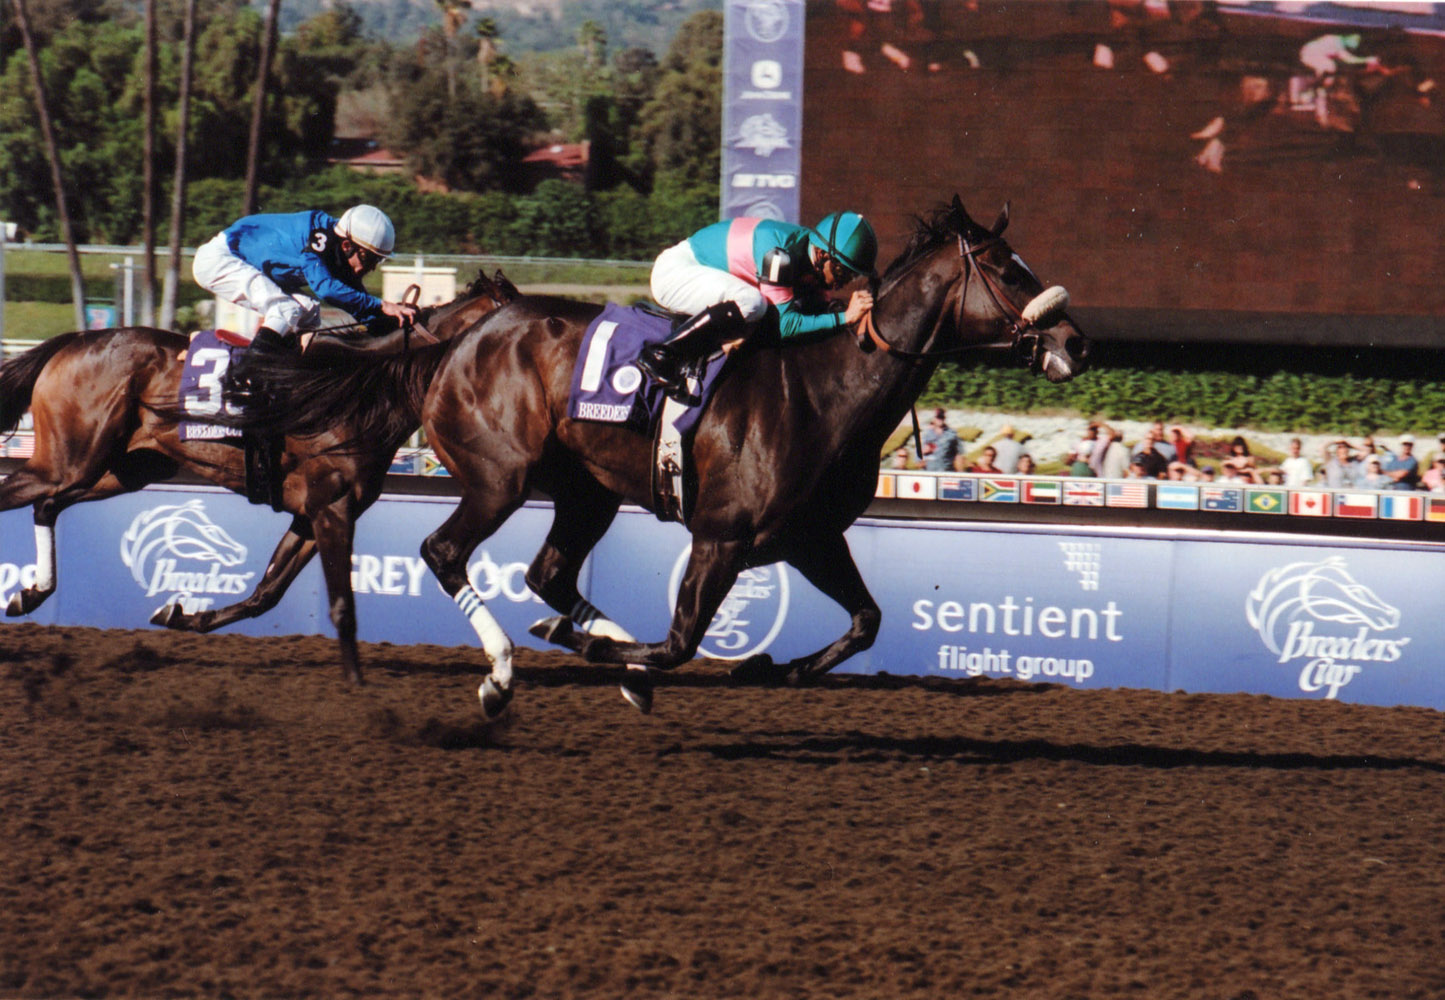 Zenyatta (Mike Smith up) winning the 2008 Breeders' Cup Ladies' Classic at Santa Anita (Bill Mochon/Museum Collection)